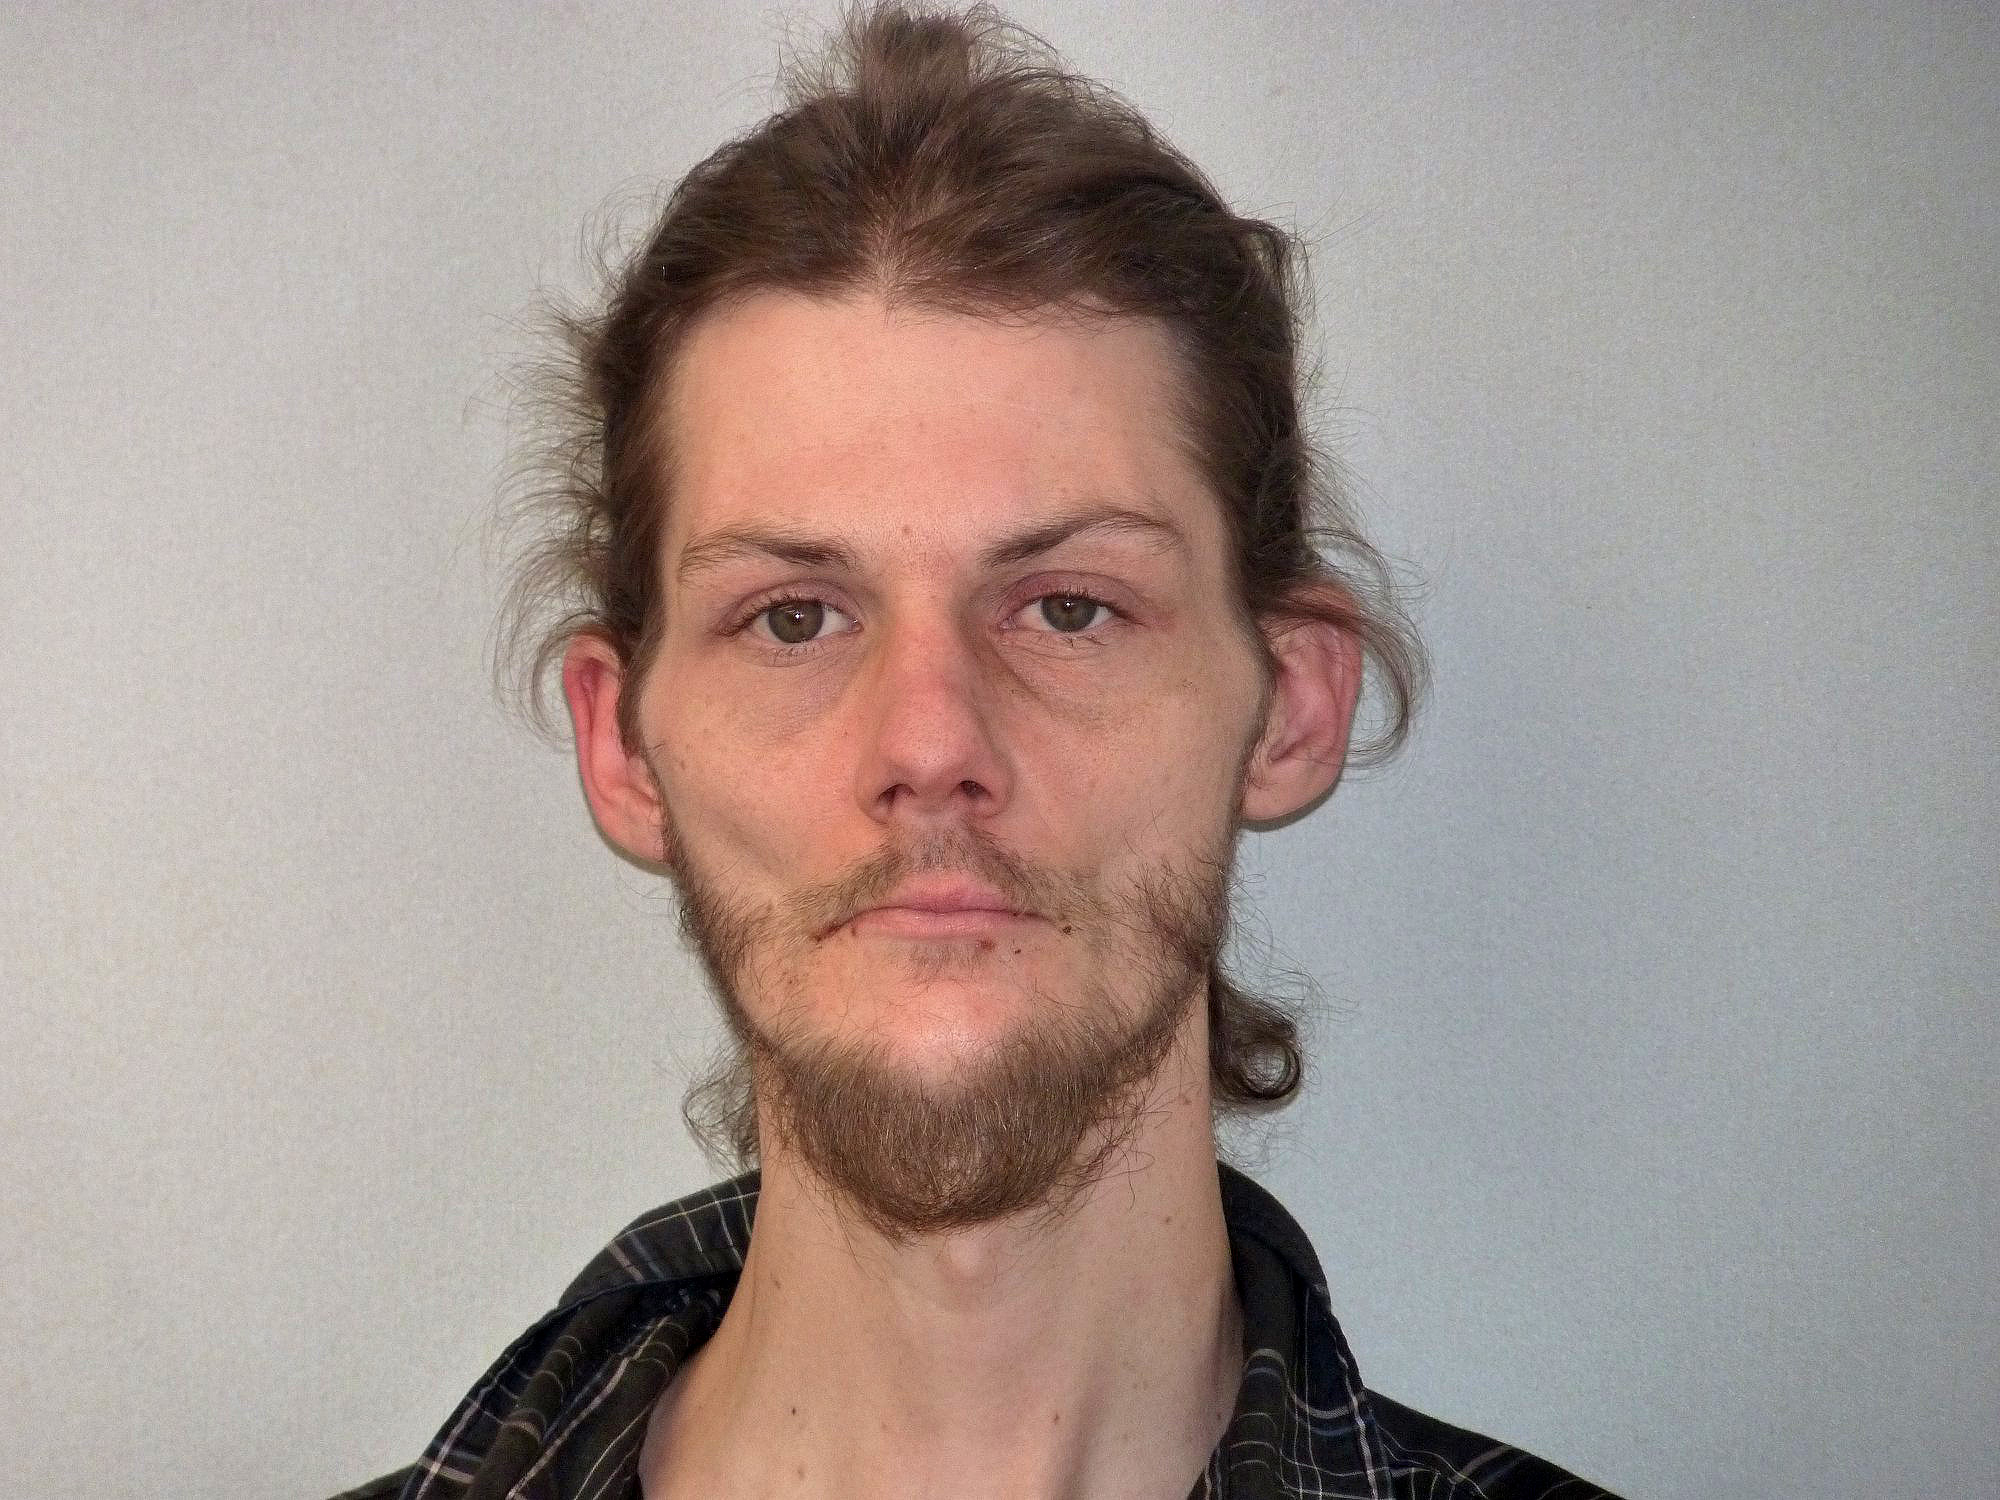 Matthew Anderson a Maine Man Charged with Turning Children' Playroom in Church into Meth Den